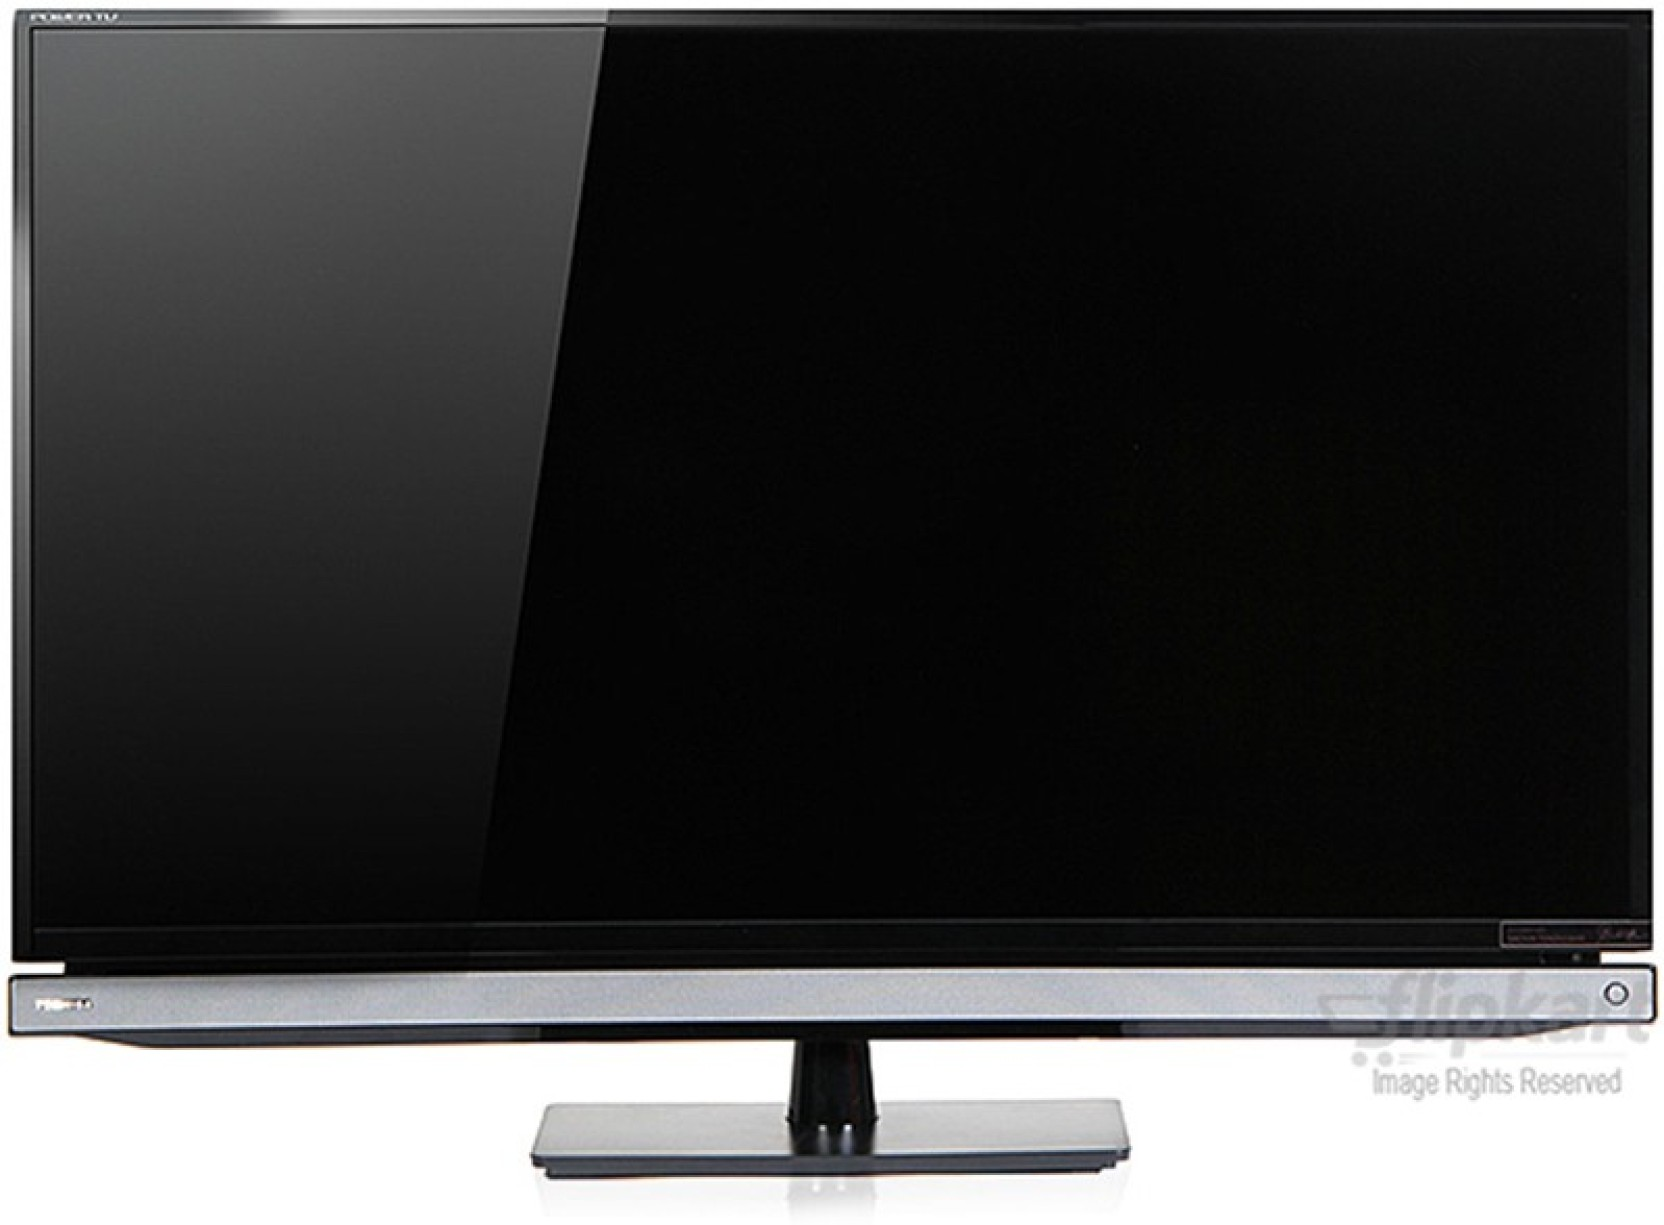 Led 80cm additionally Watch together with Sony Bravia 60 Inch Tv likewise Sony Bravia Klv S32a10 Lcd Television moreover Best Sony Ericsson Xperia Neo Deals. on sony bravia 56 inch